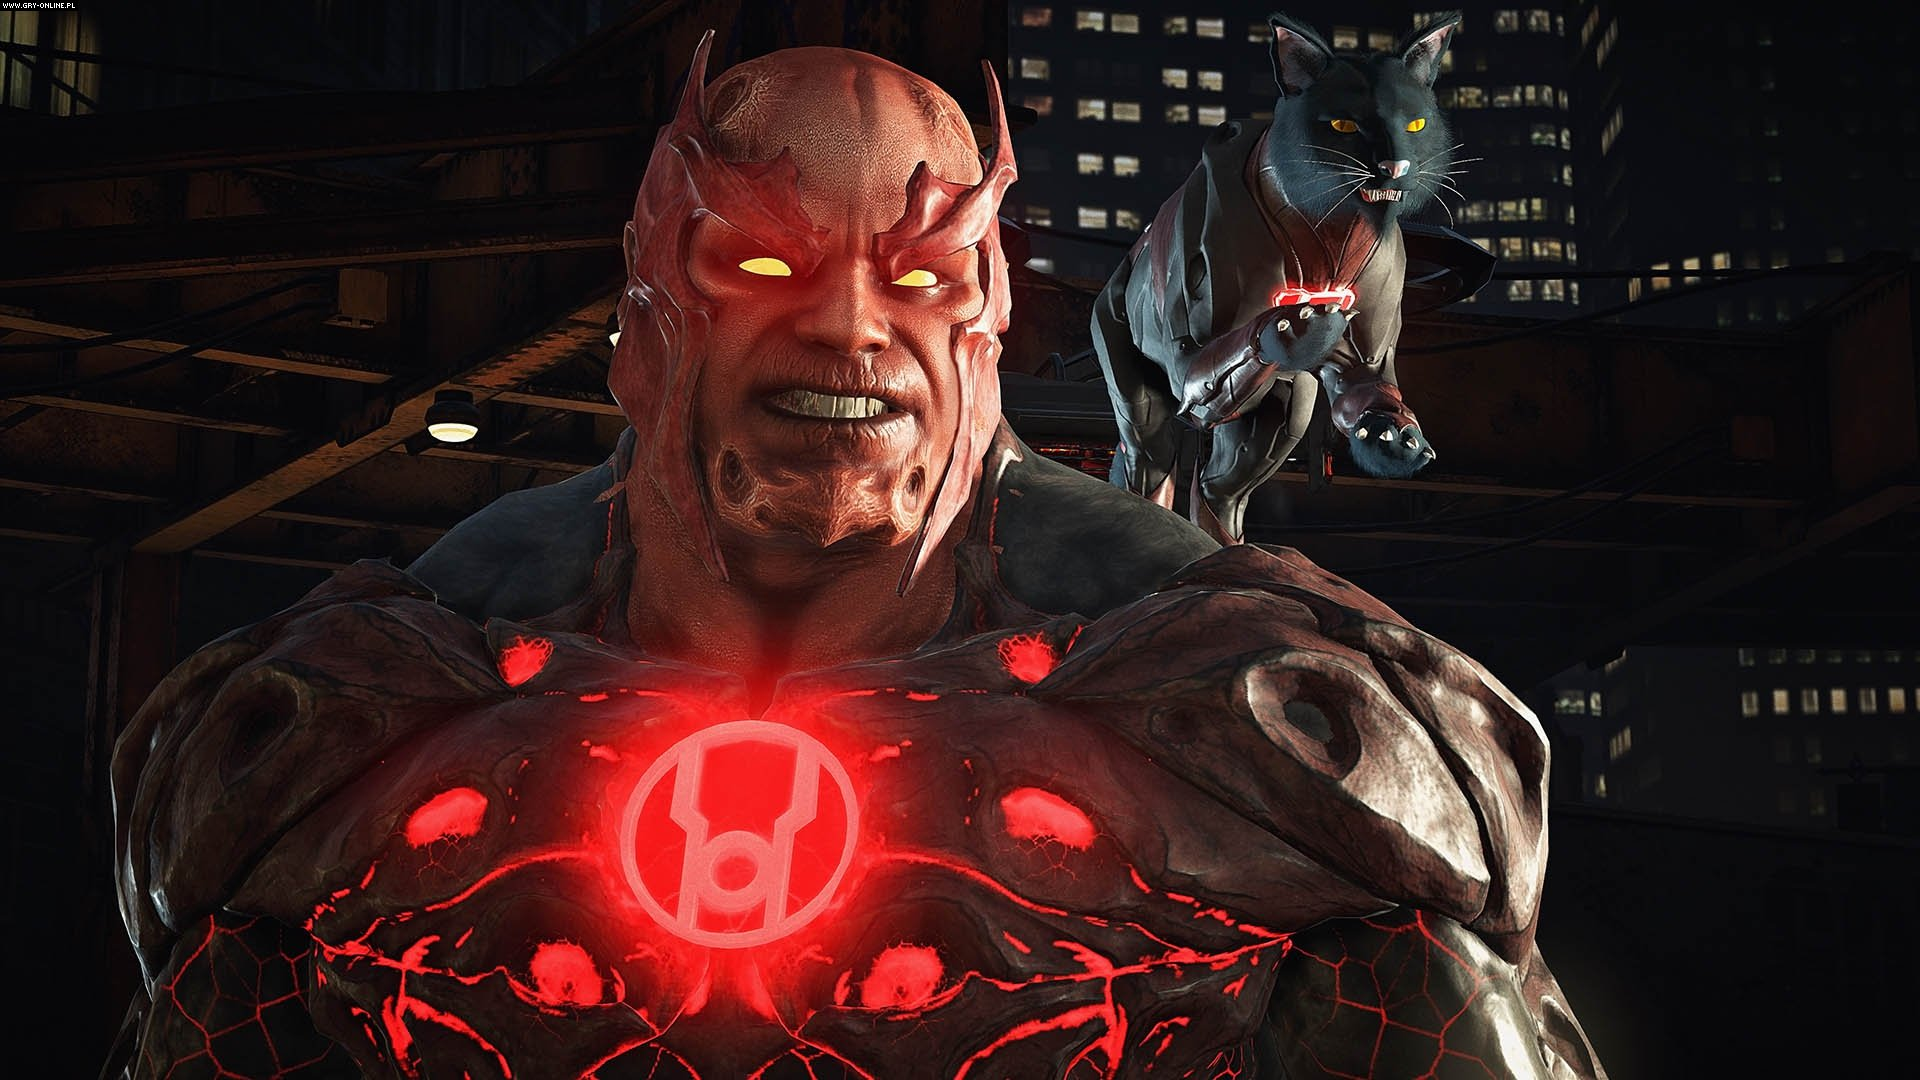 Injustice 2 PS4, XONE Games Image 15/24, NetherRealm Studios , Warner Bros Interactive Entertainment